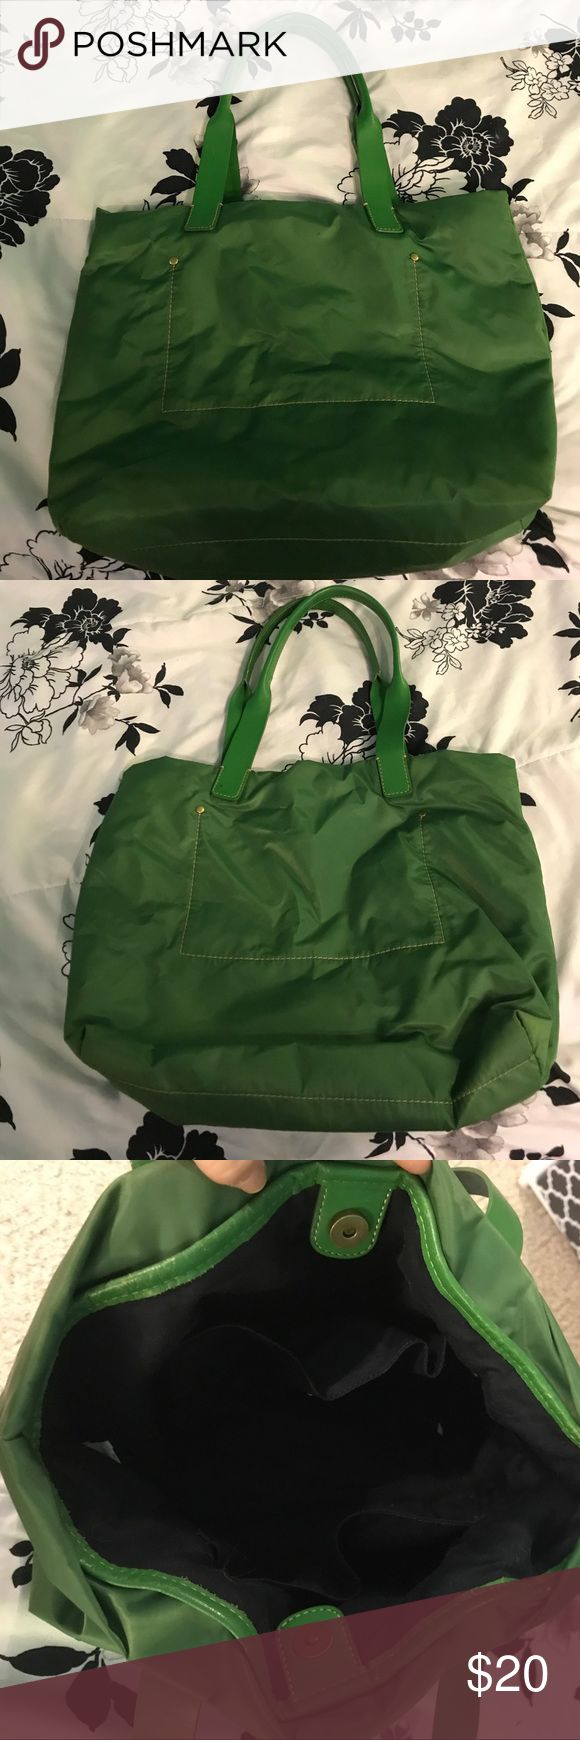 """J Crew green purse Simple J crew purse. Outside is nylon, trim and handles are real leather. Inside is navy with two pockets on the sides, no zippers. Inside is I damaged. Outside, apart from being slouchy, is in excellent condition, it hasn't been used much, handles don't even look like they've been used. 12"""" deep and 16"""" wide. J. Crew Bags Totes"""